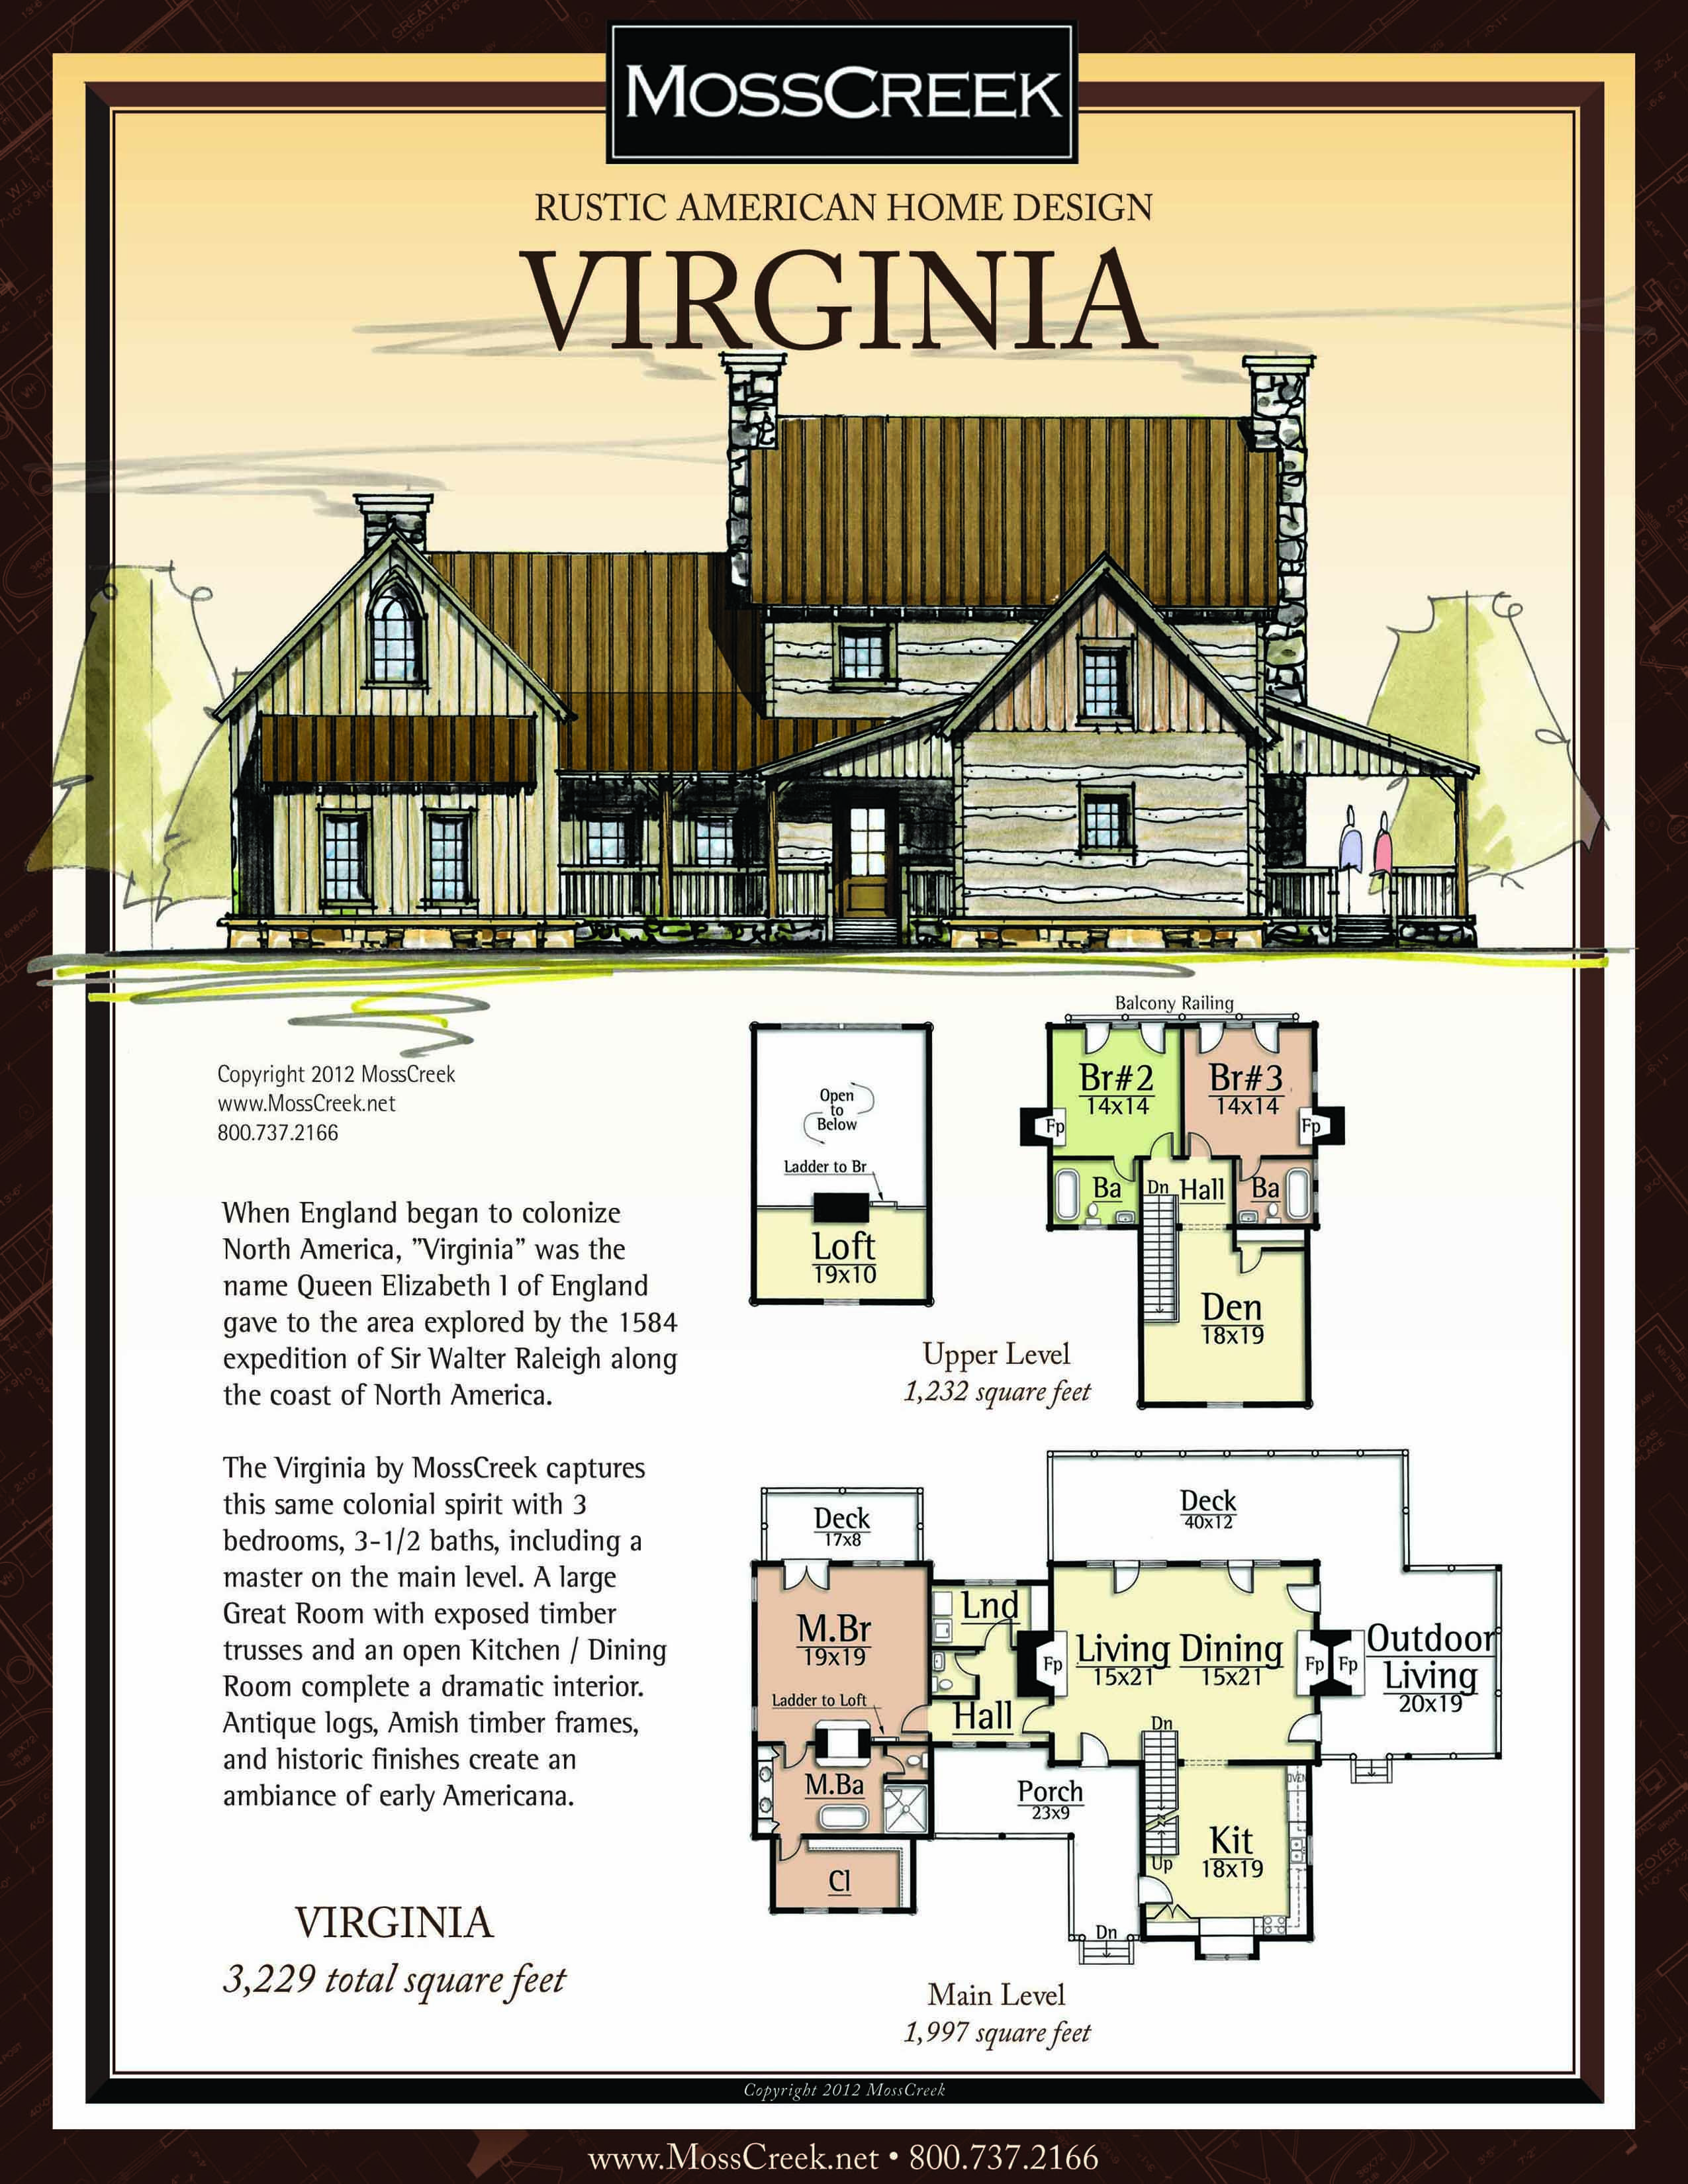 A Ready To Purchase 3229 Sf Home Plan From Mosscreek